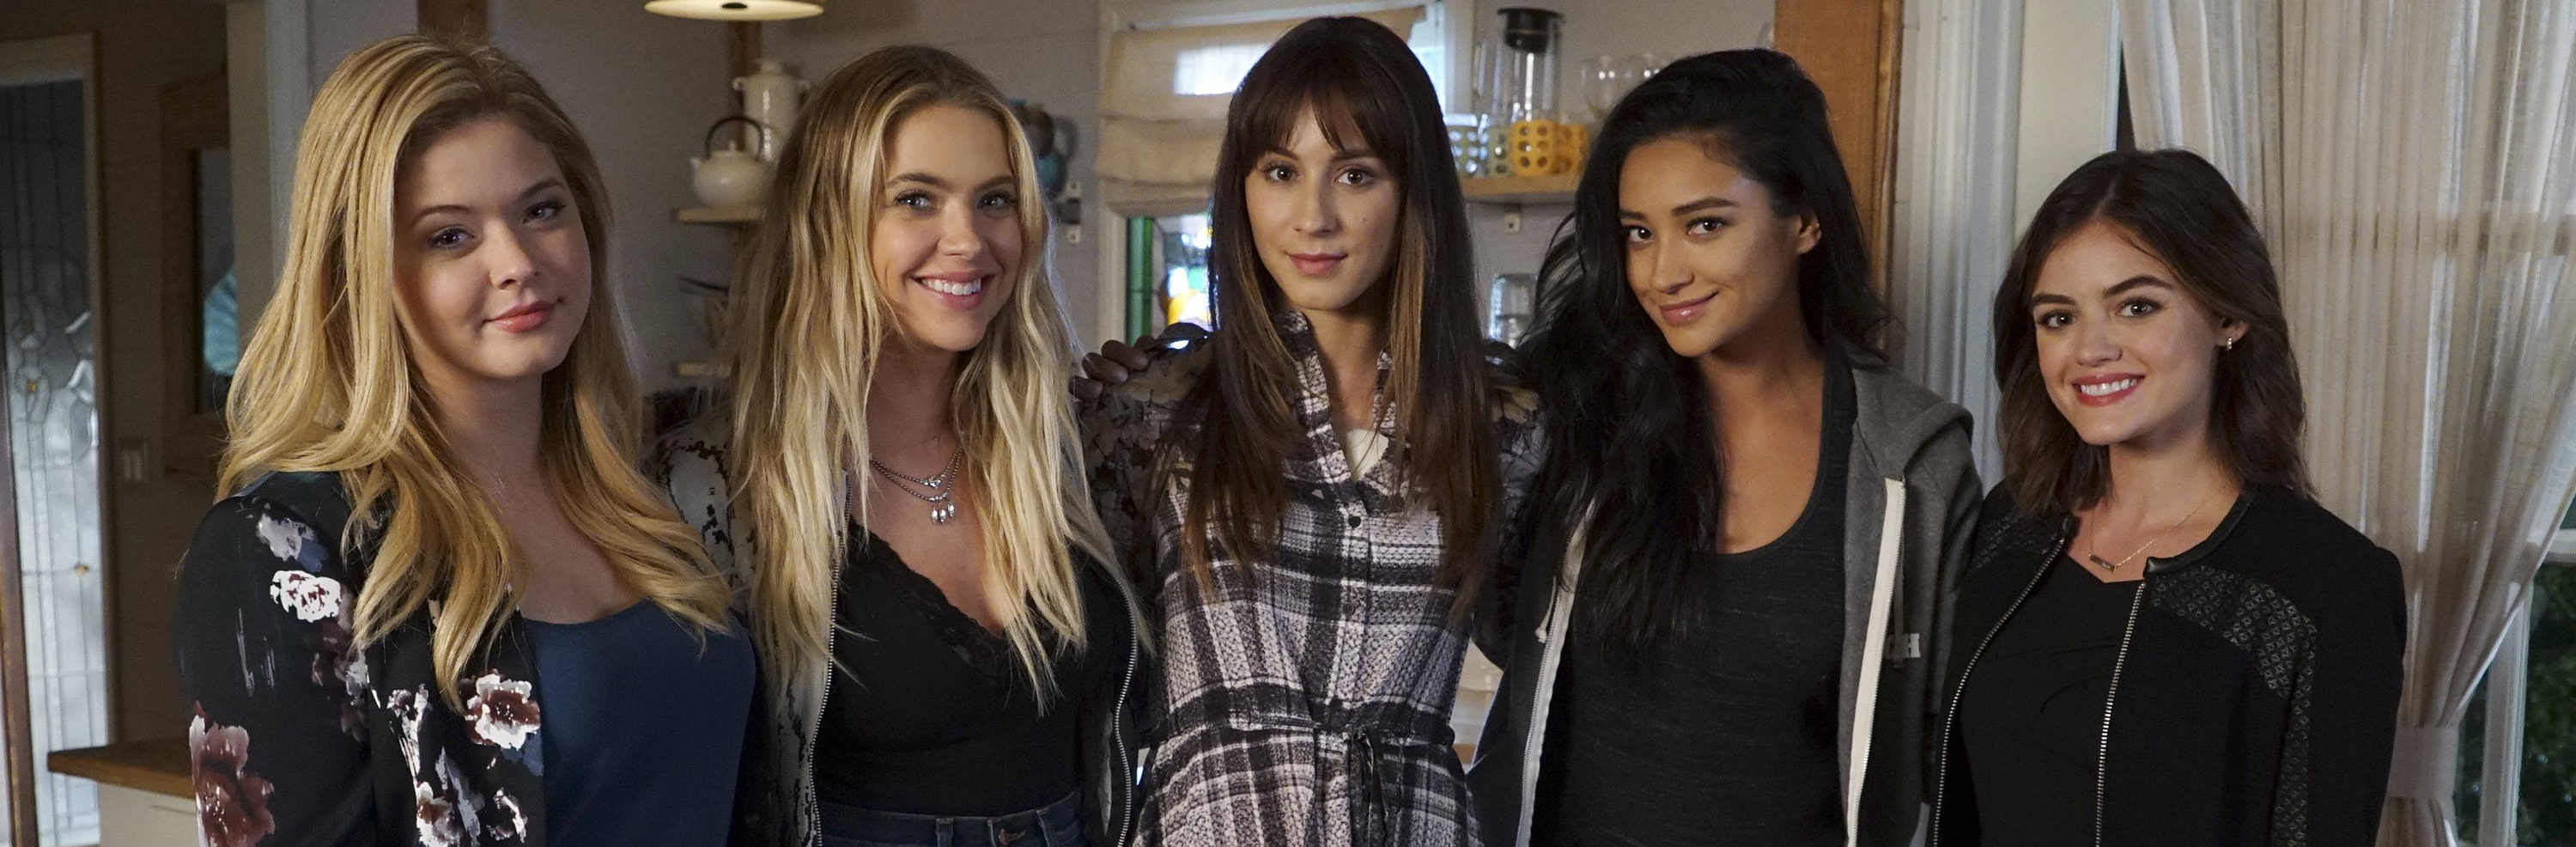 Pretty Little Liars Season 7B Episode 2 Recap